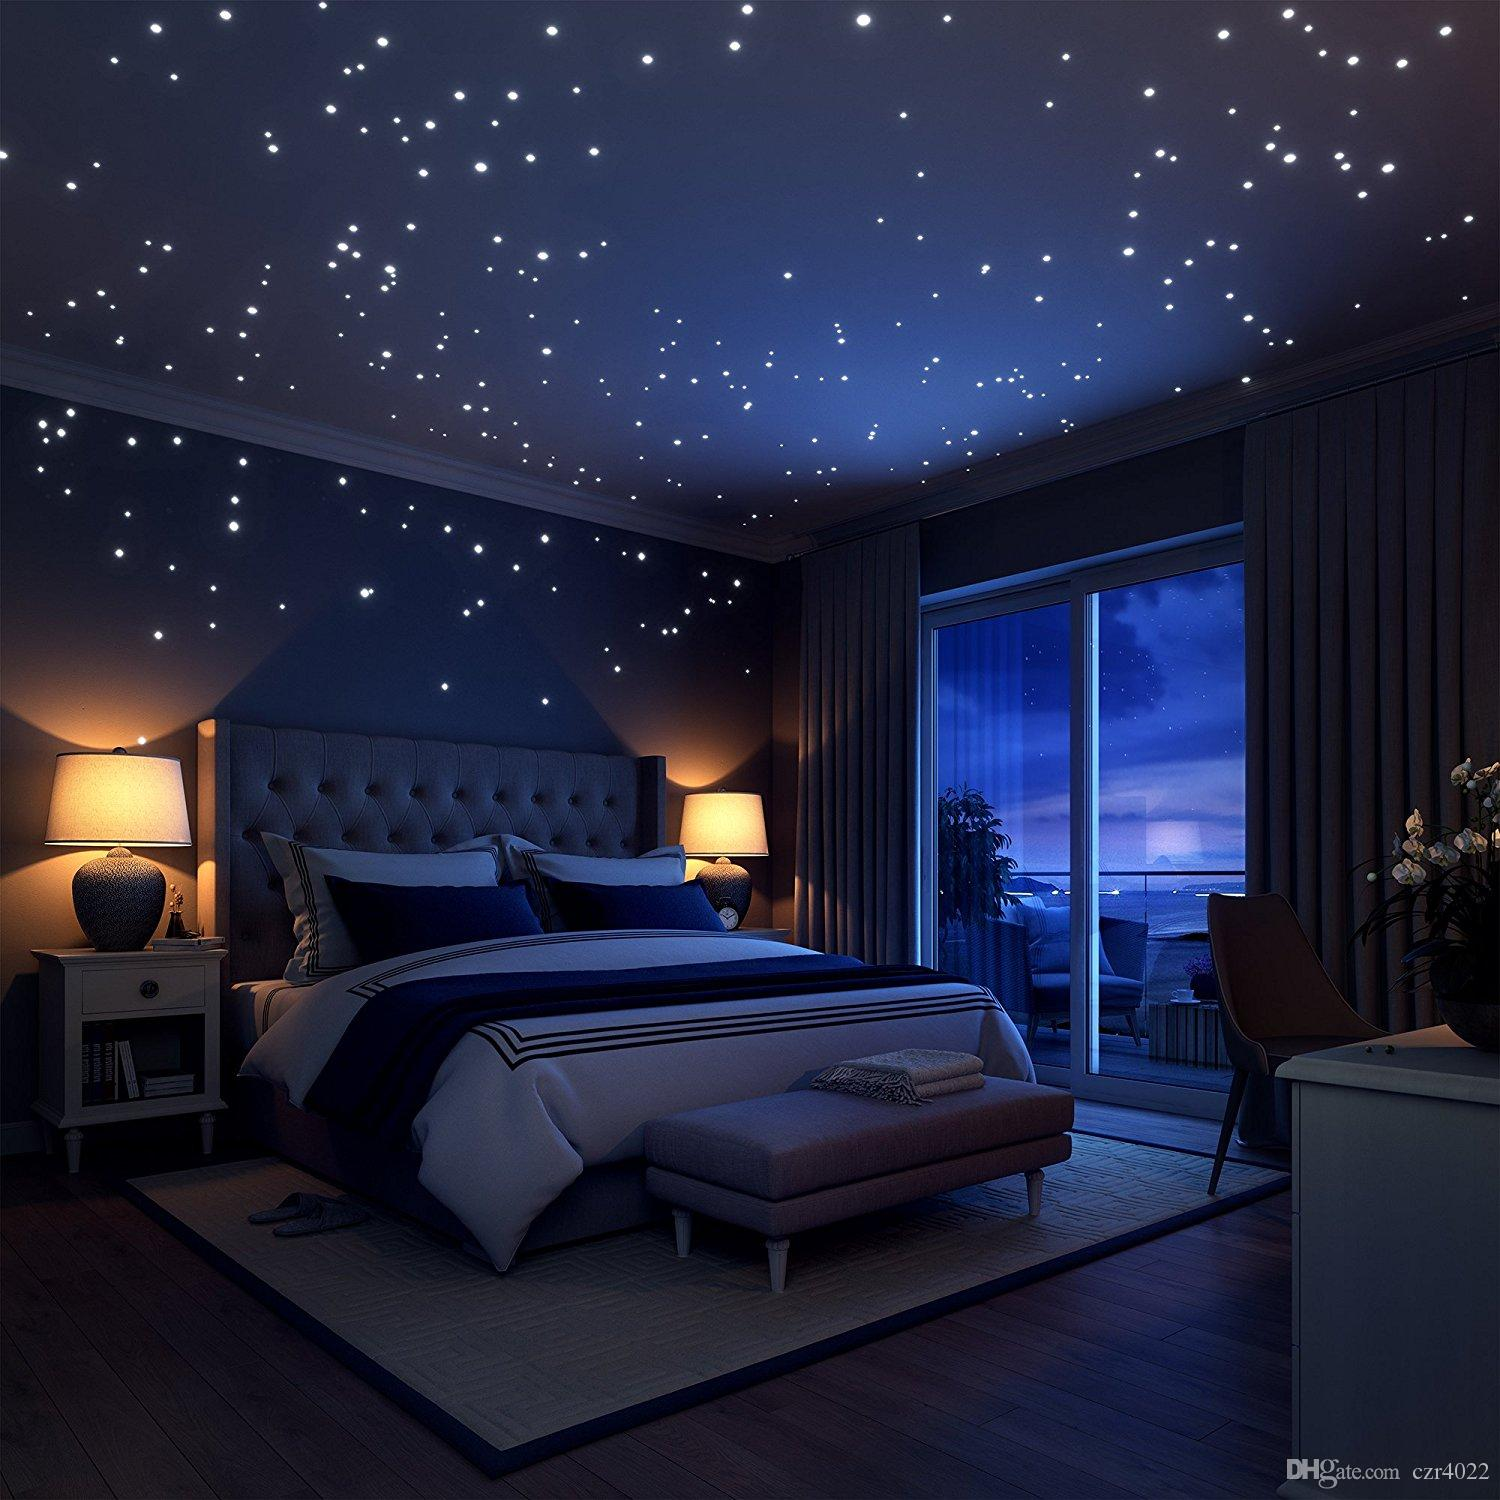 Glow In The Dark Stars Wall Stickers 252 Adhesive Dotoon For Starry Sky Perfect Kids Bedding Room Or Birthday Gift Train Tree